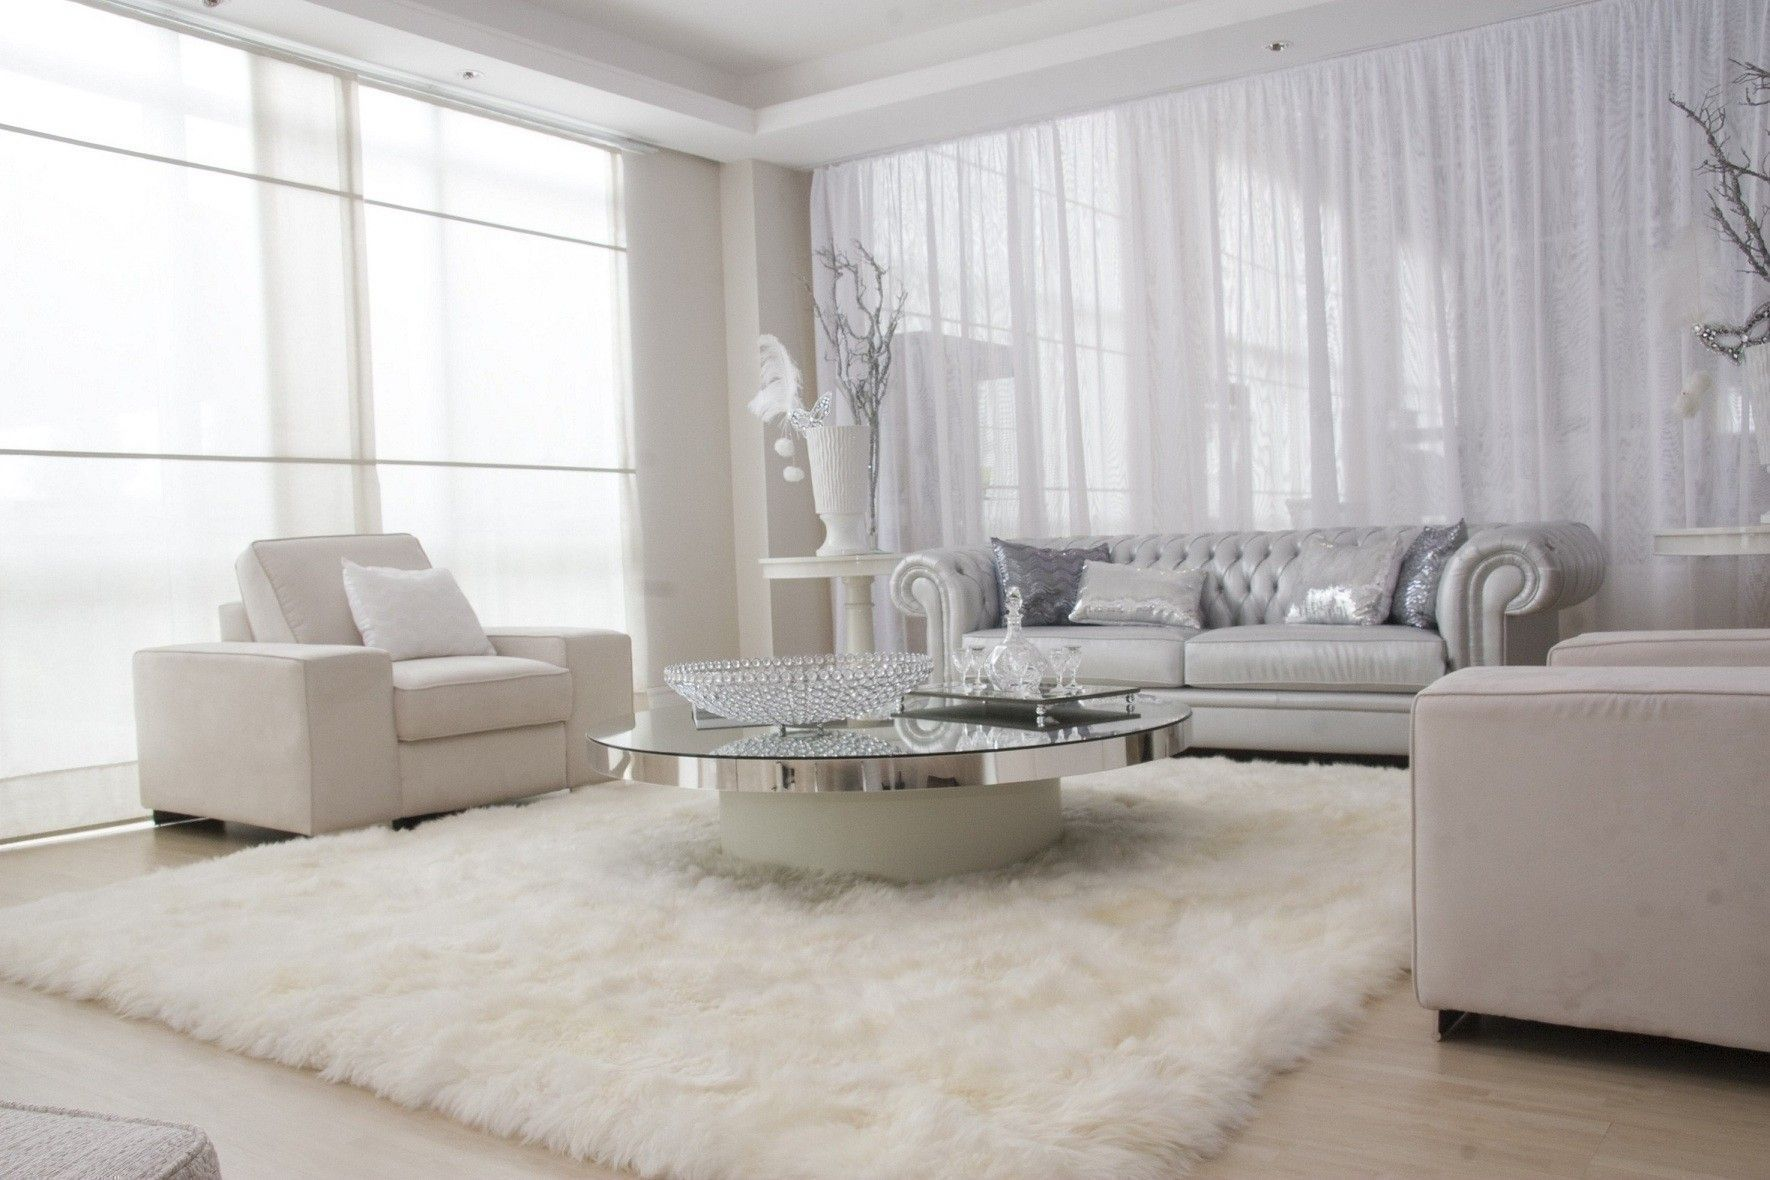 Best Of Shabby Chic sofas Living Room Furniture - shabby chic dining ...